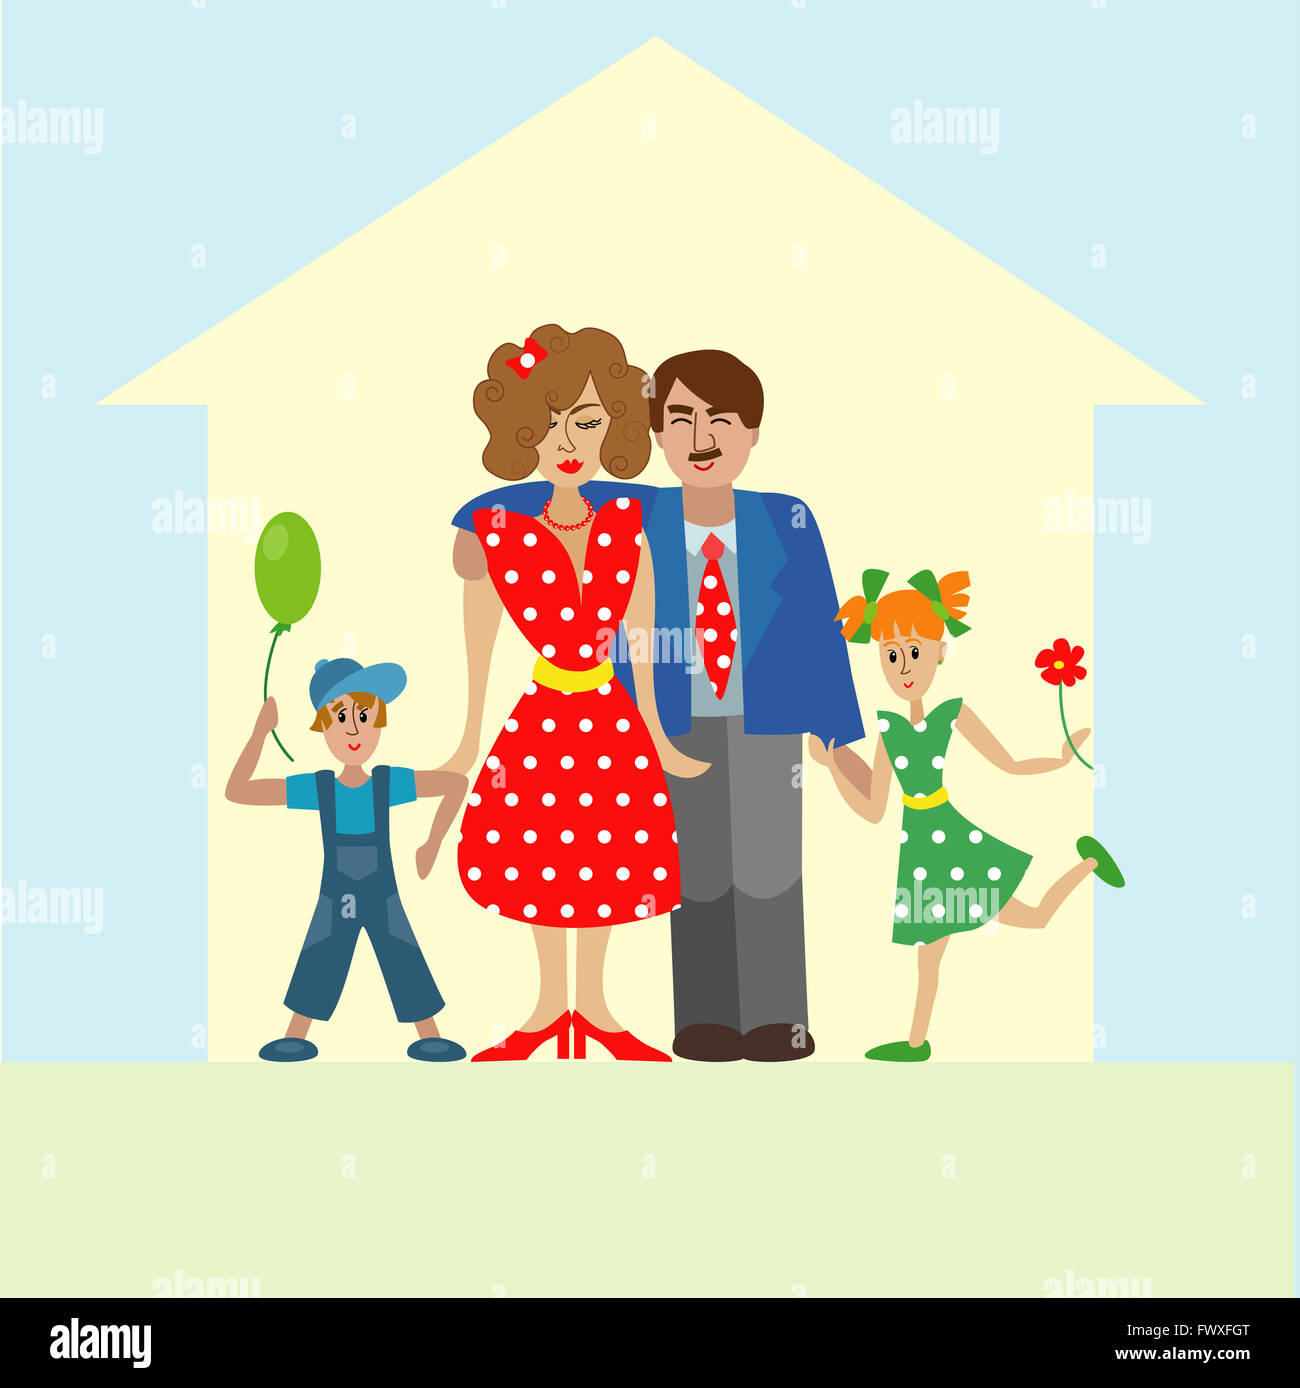 Portrait of four member happy stylish family posing together. Parents with kids. colorful illustration in flat design Stock Photo